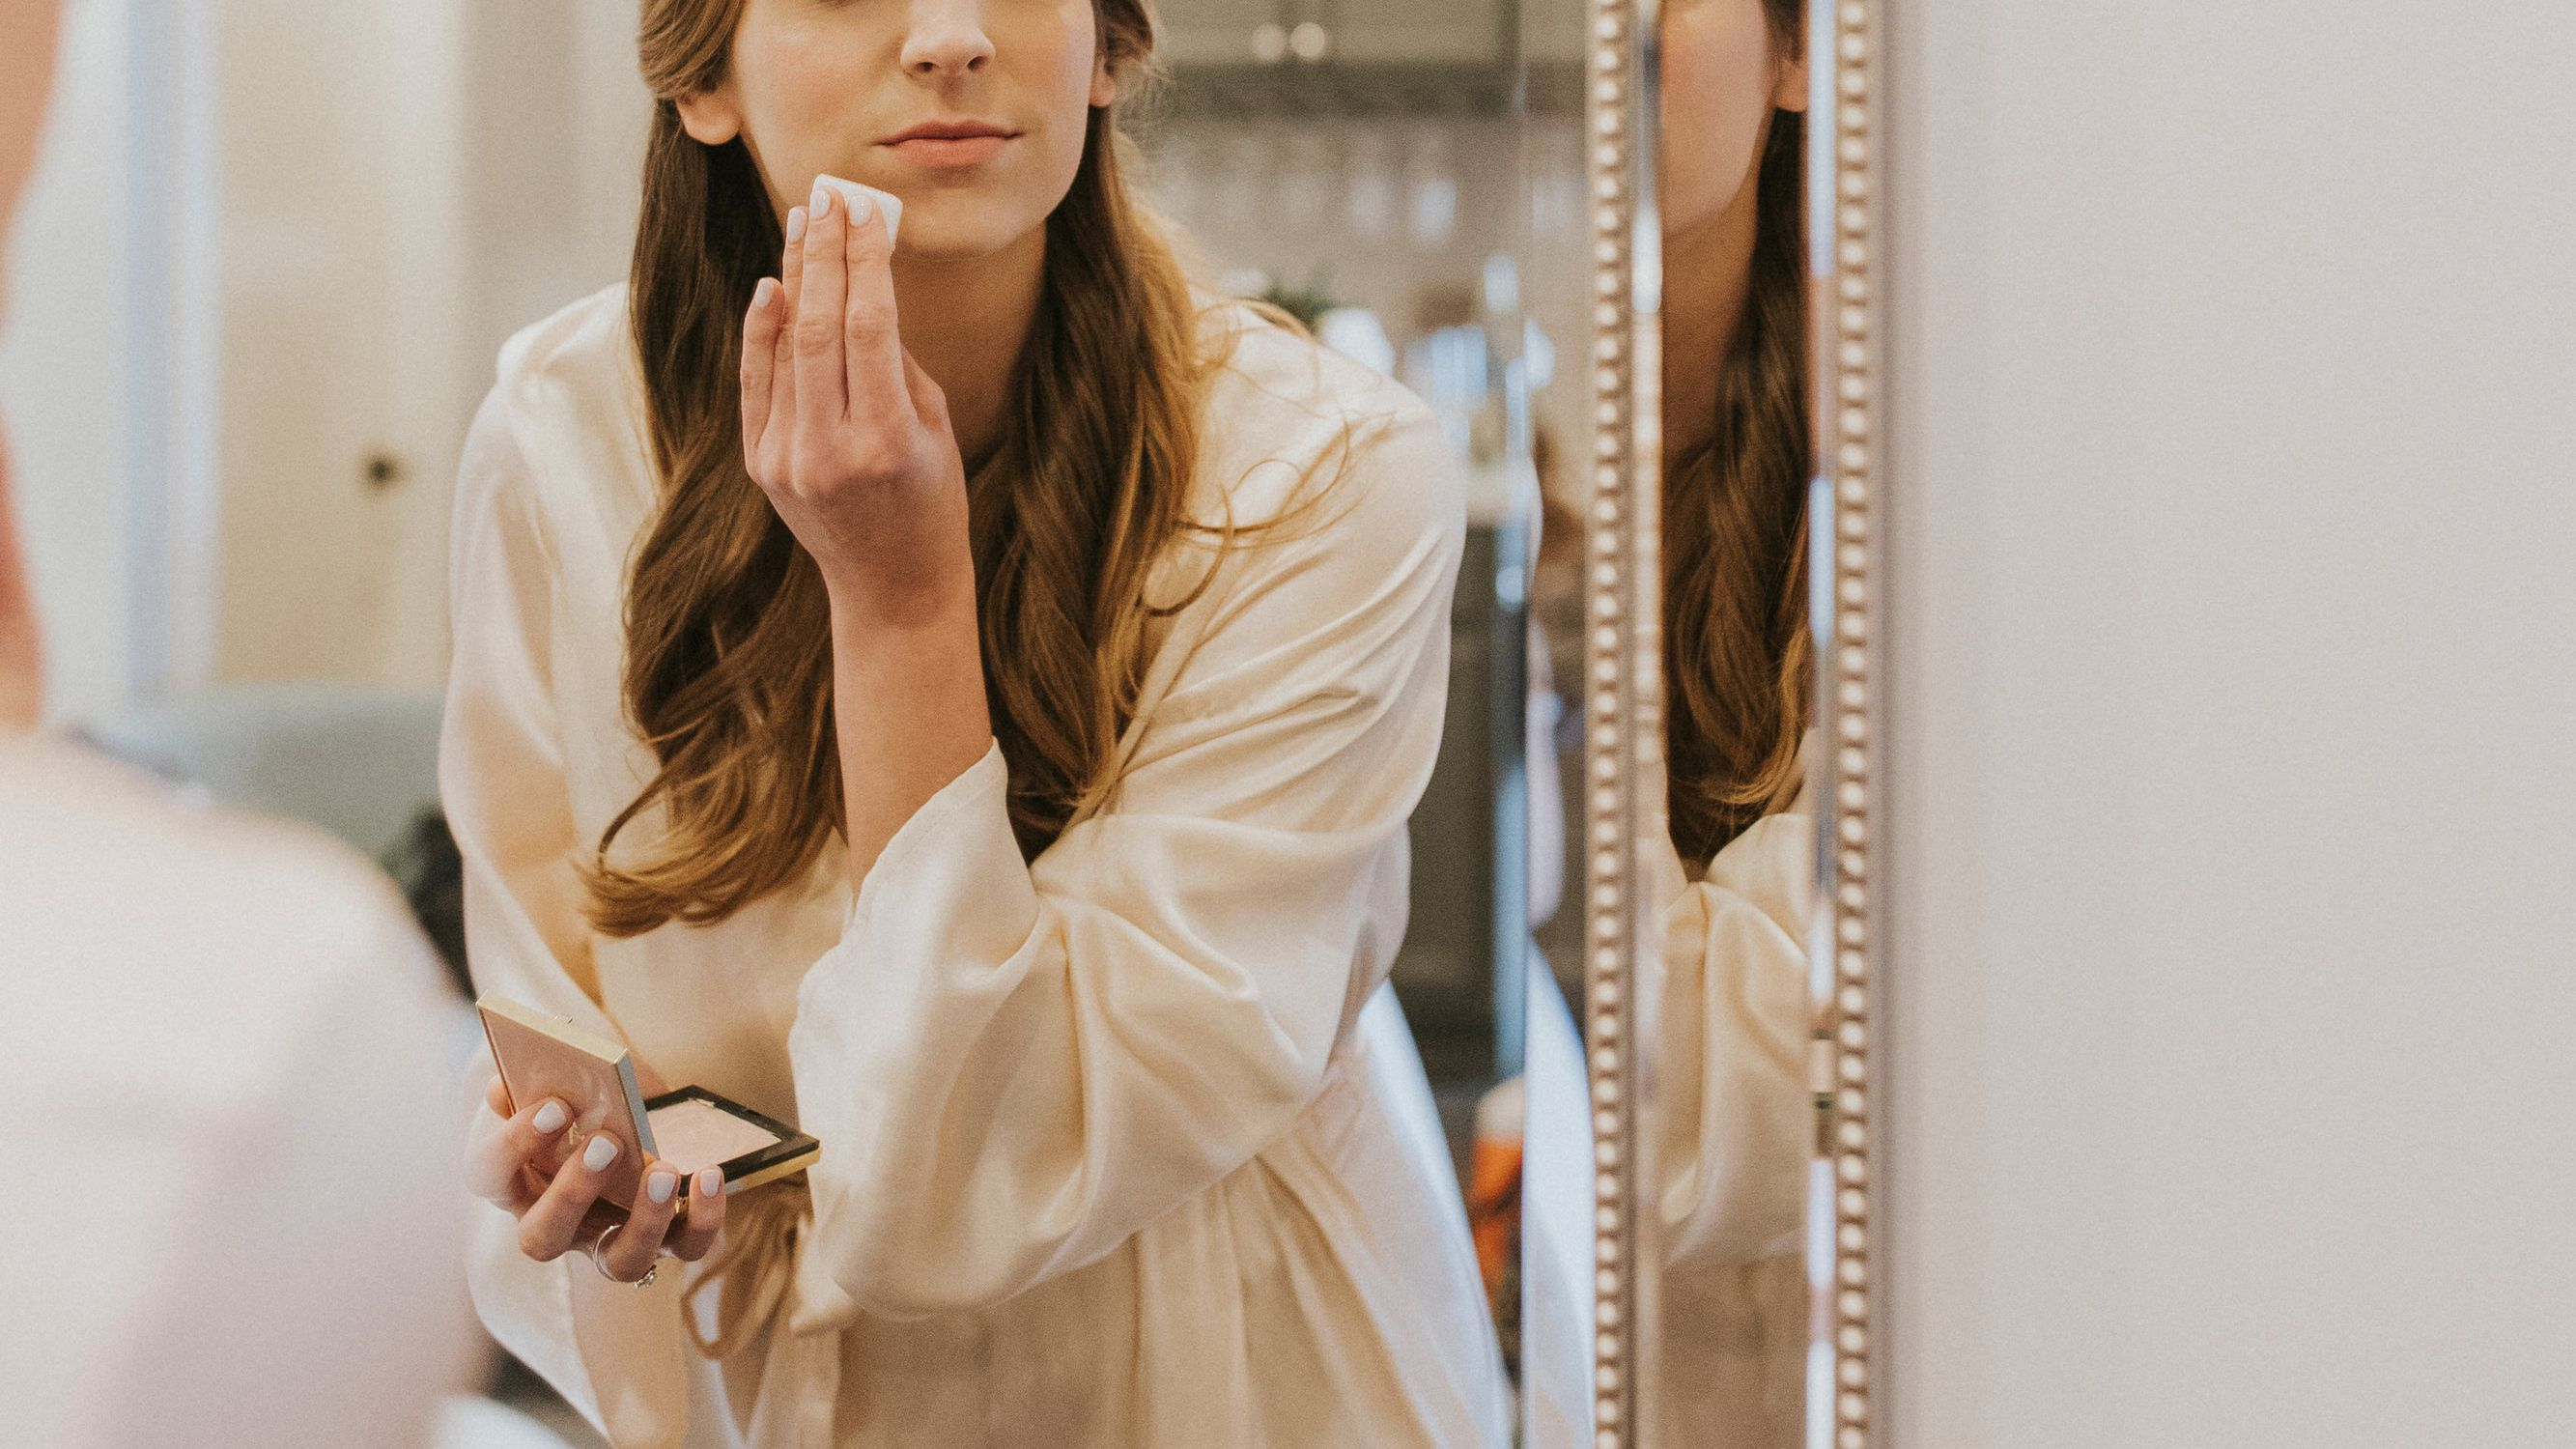 Want To Make Yourself More Beautiful? Keep Reading